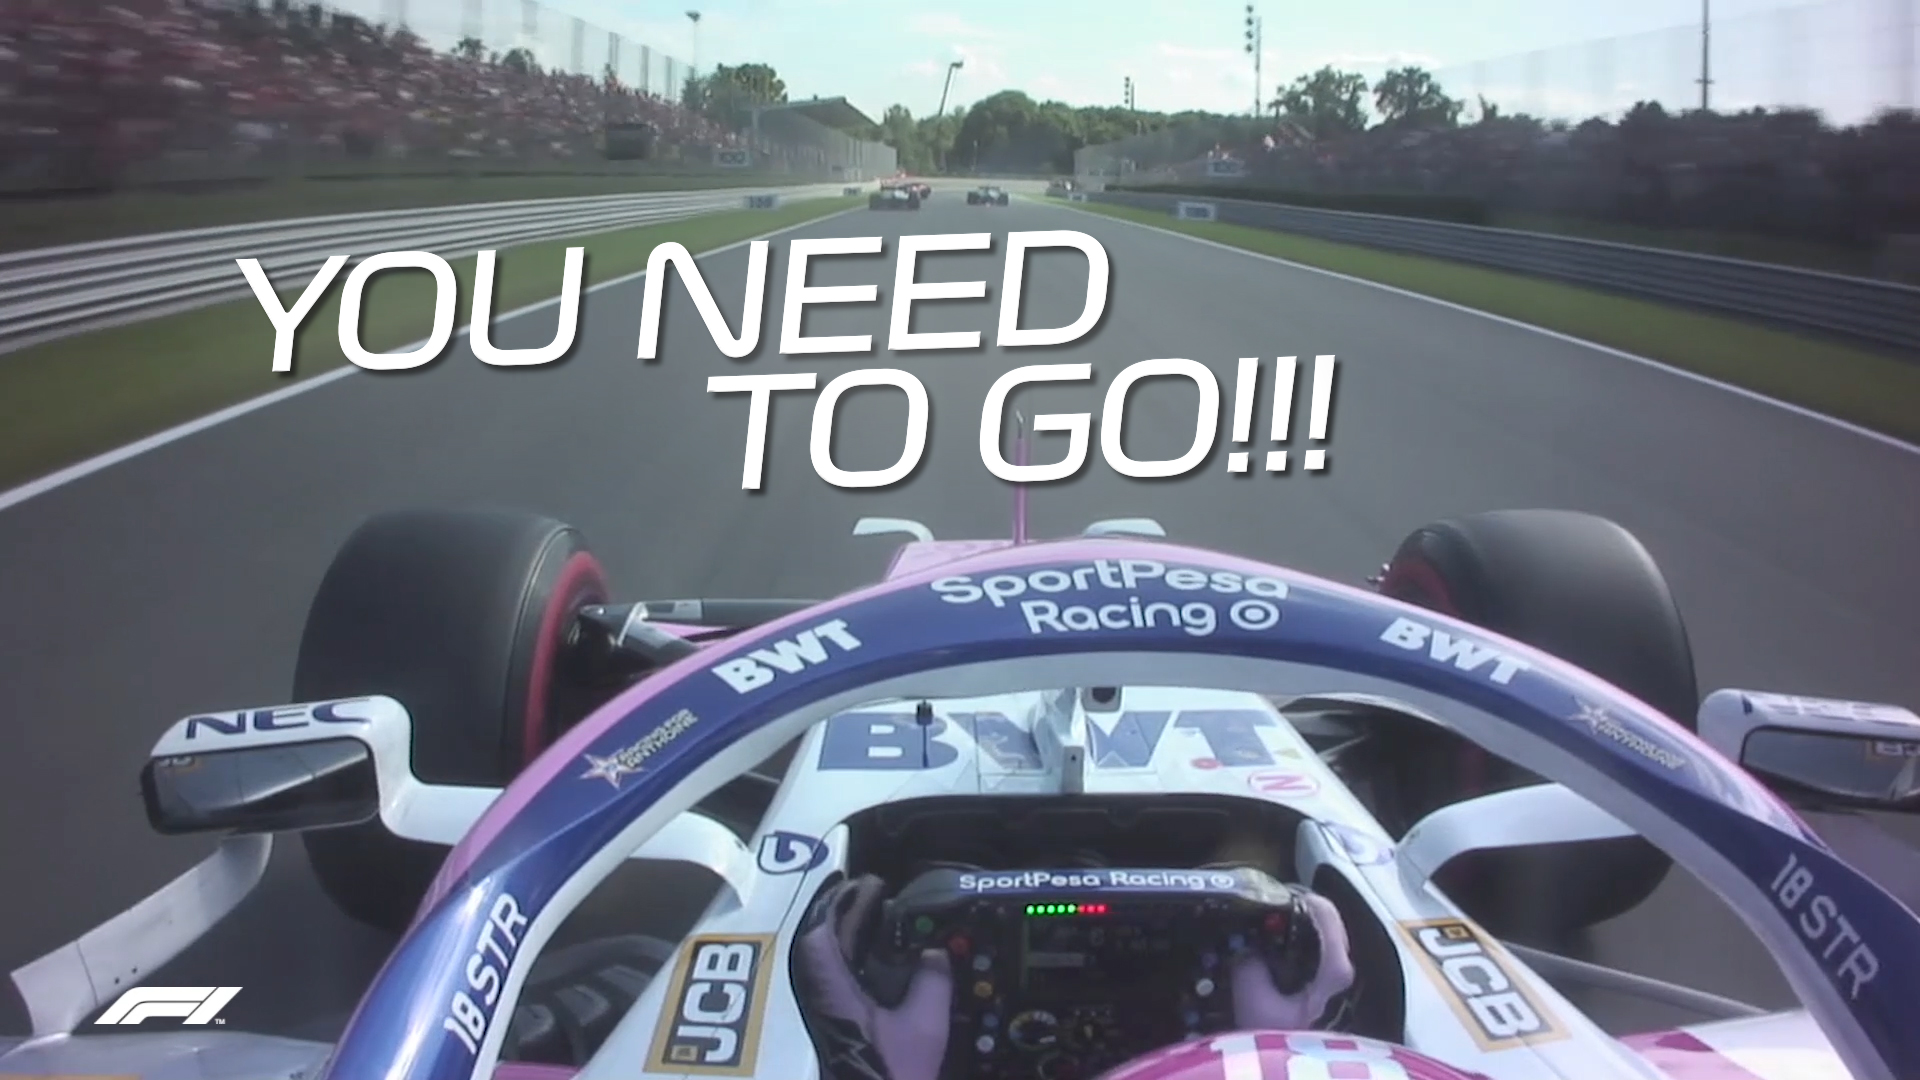 Italian Grand Prix 2019: Team radio video from the end of